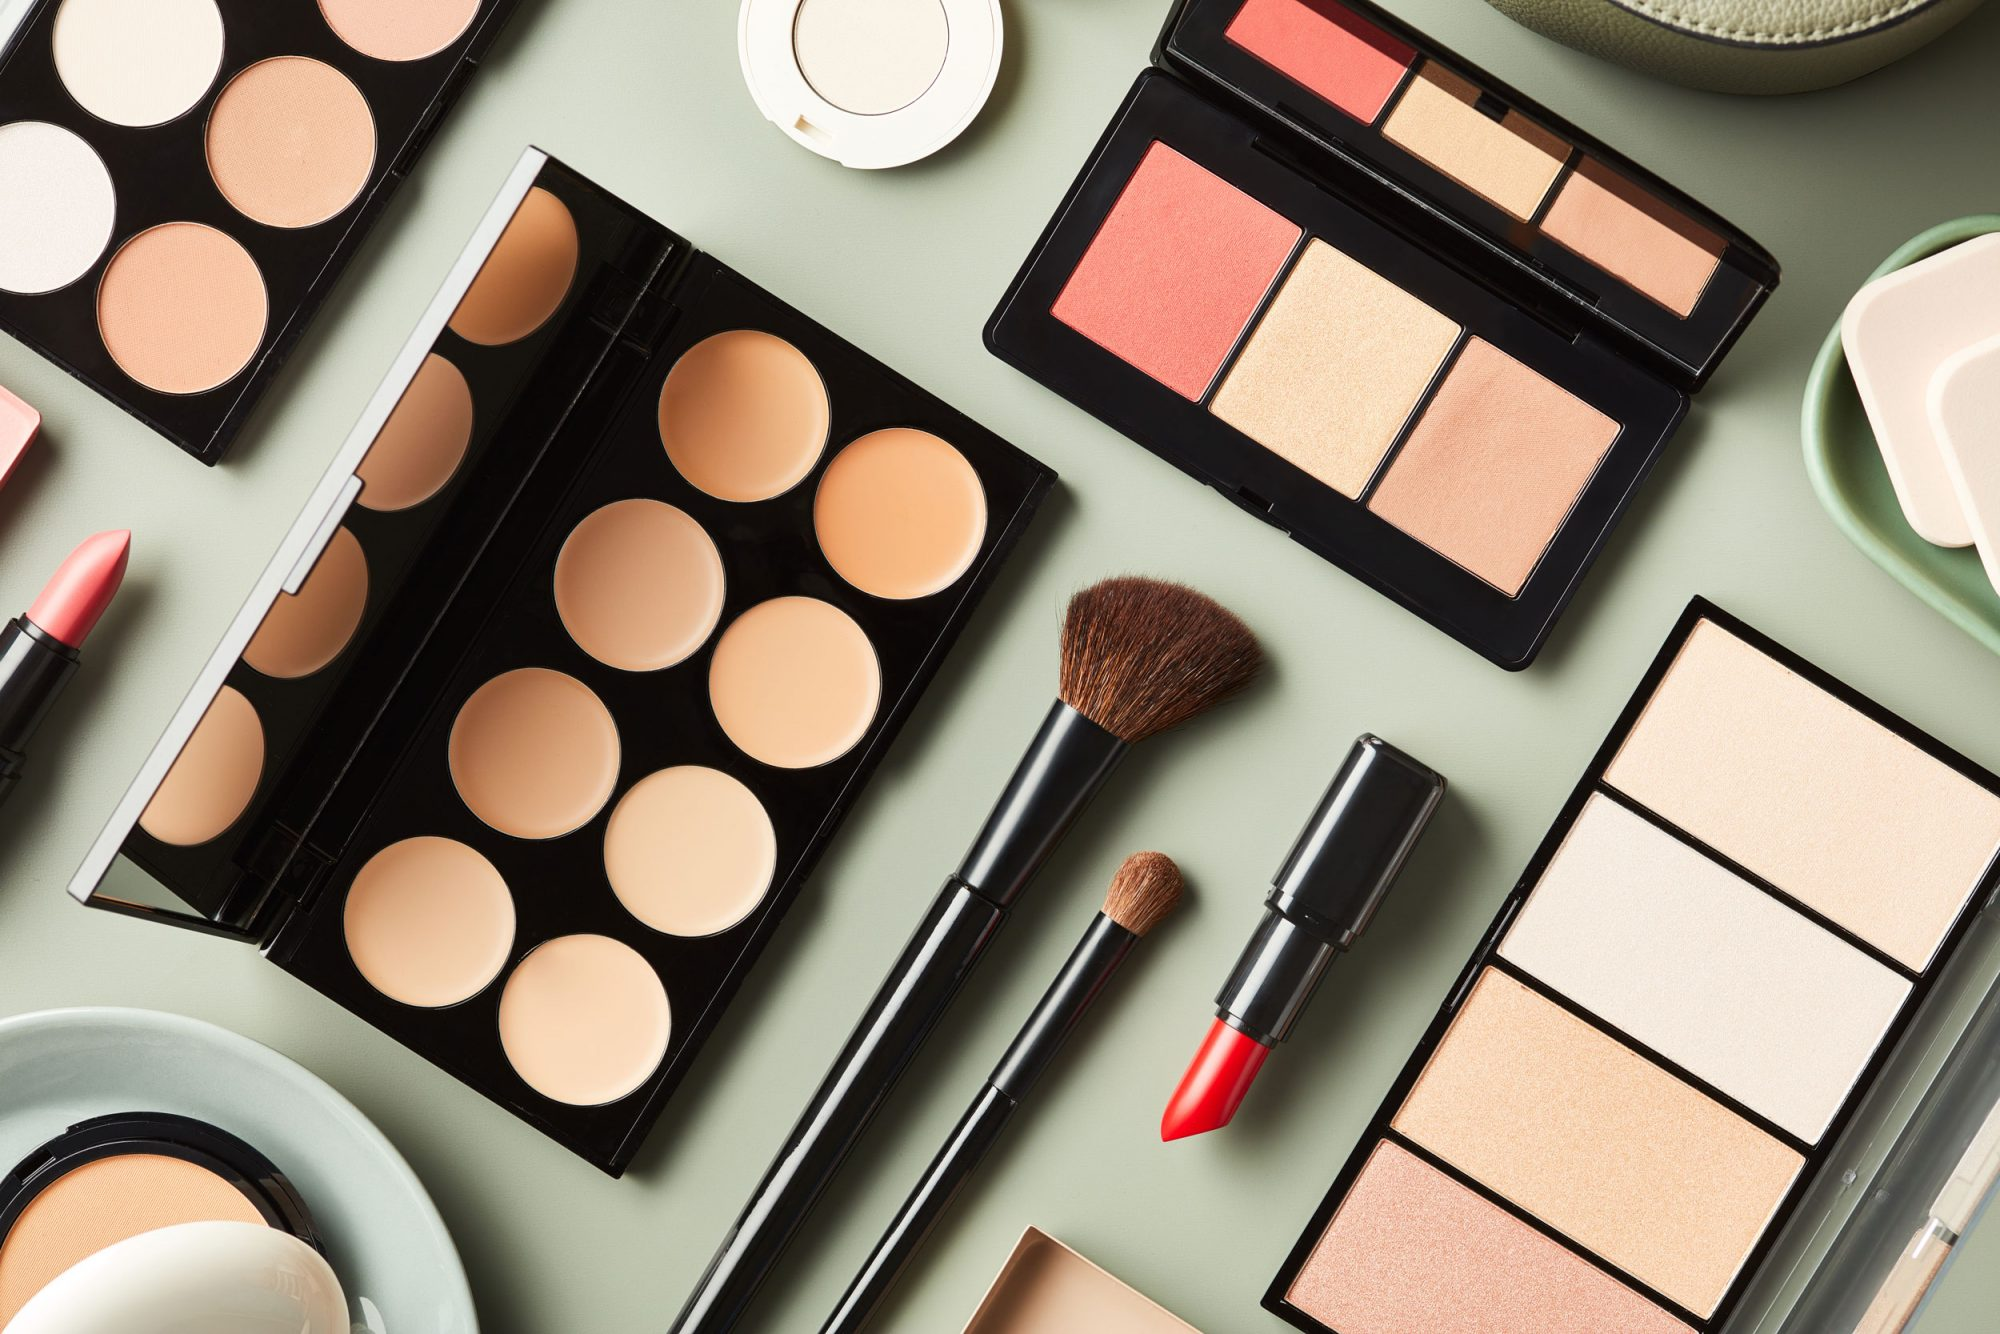 ECOMM: Amazon Revealed Over 600 Customer-Favorite Beauty Products — These Are the 25 to Shop